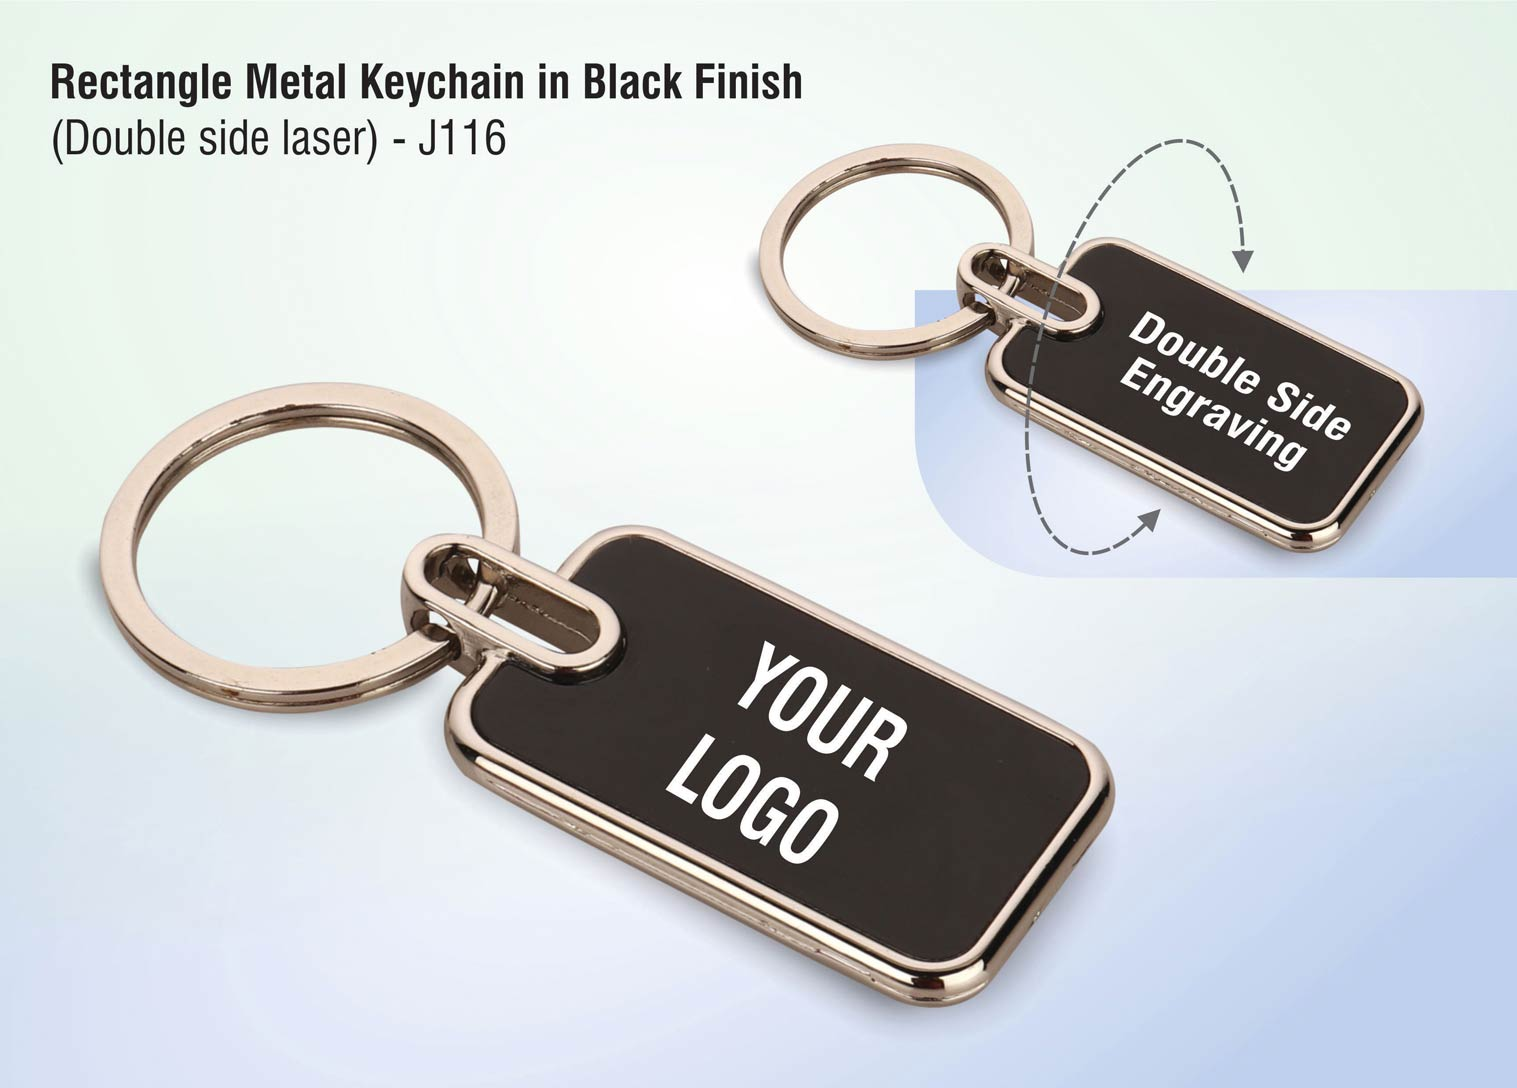 J116 - Rectangle metal keychain in Black finish (Double side laser)